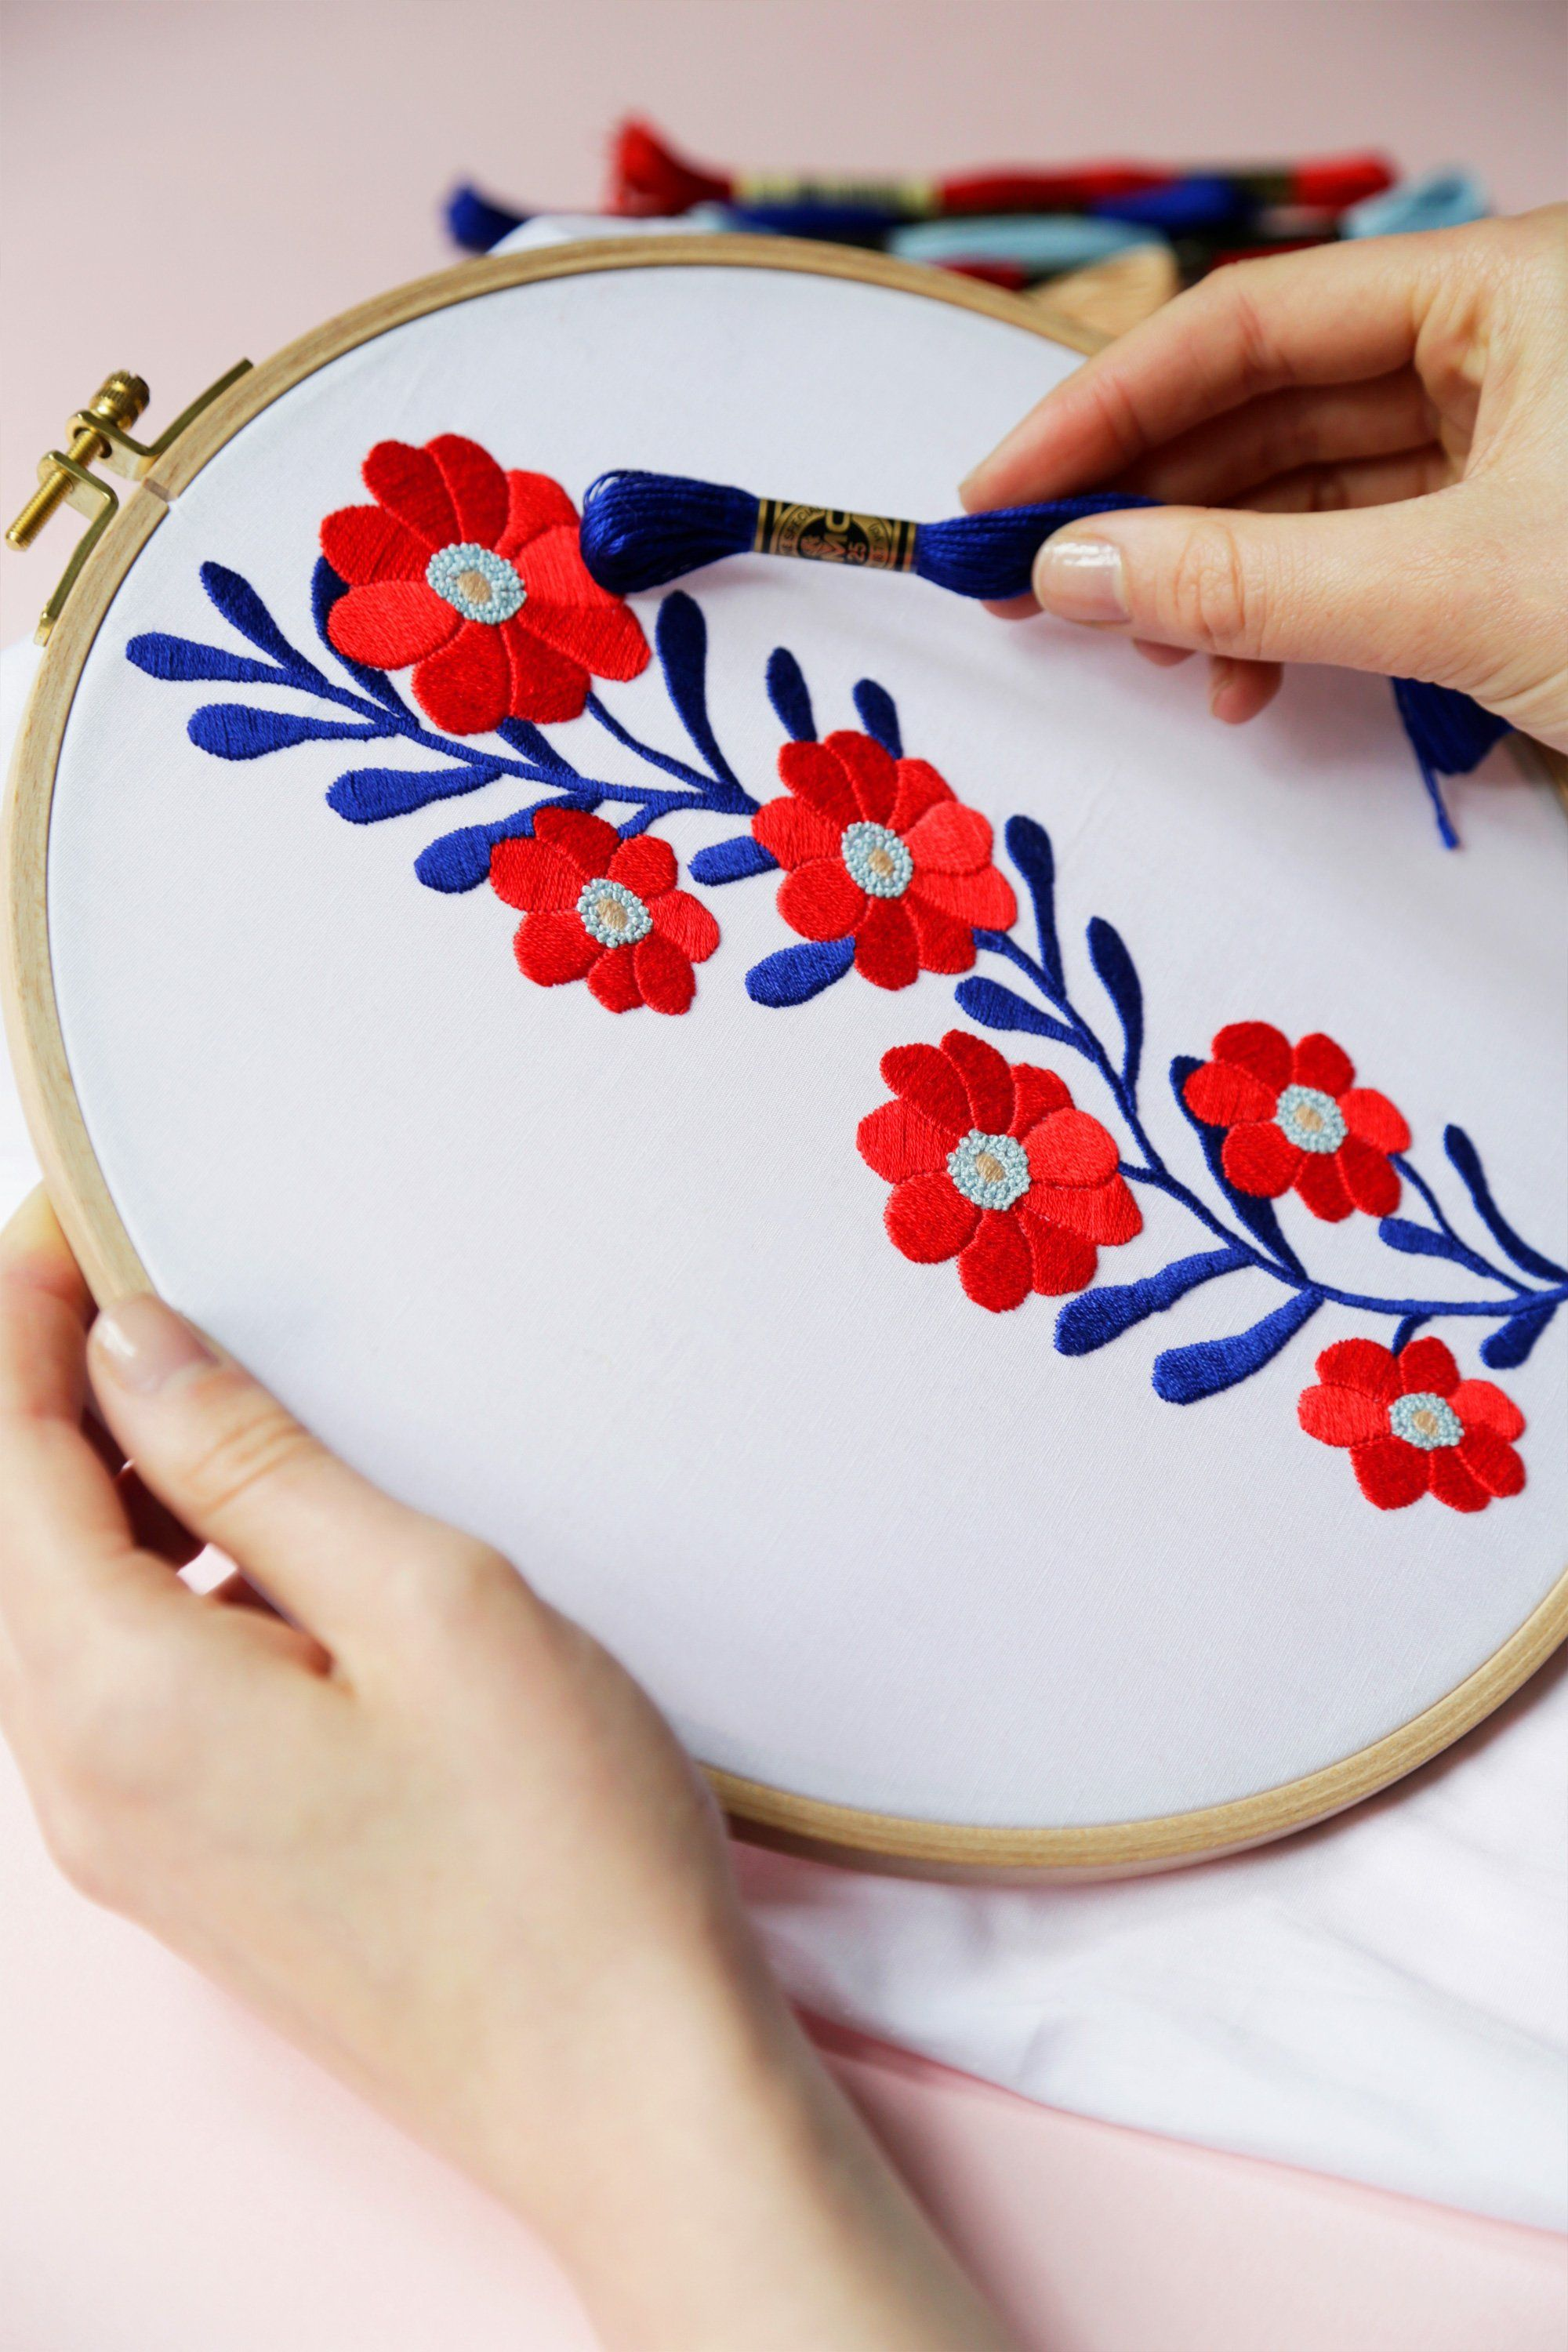 Free embroidery designs and cross stitch patterns | DMC.COM Patrones ...